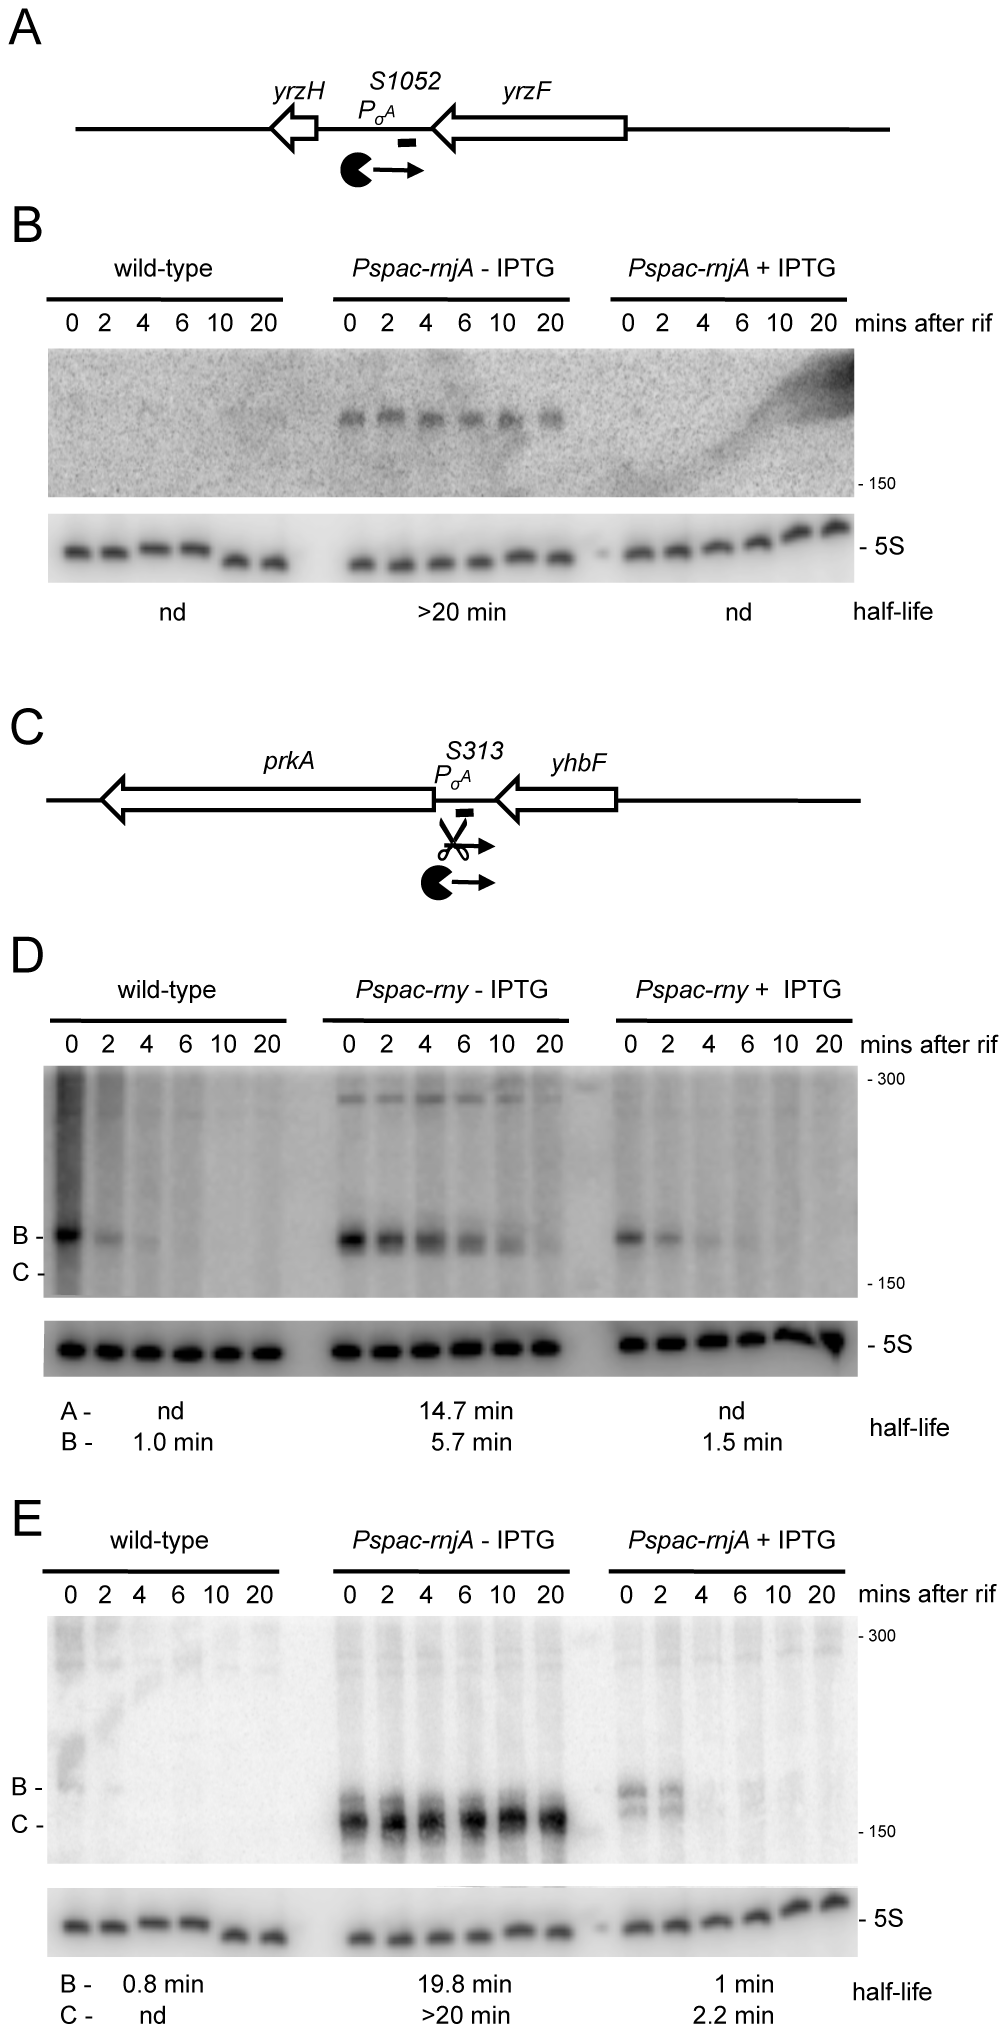 Detection of new potential regulatory RNAs in RNase Y and J1 mutants.